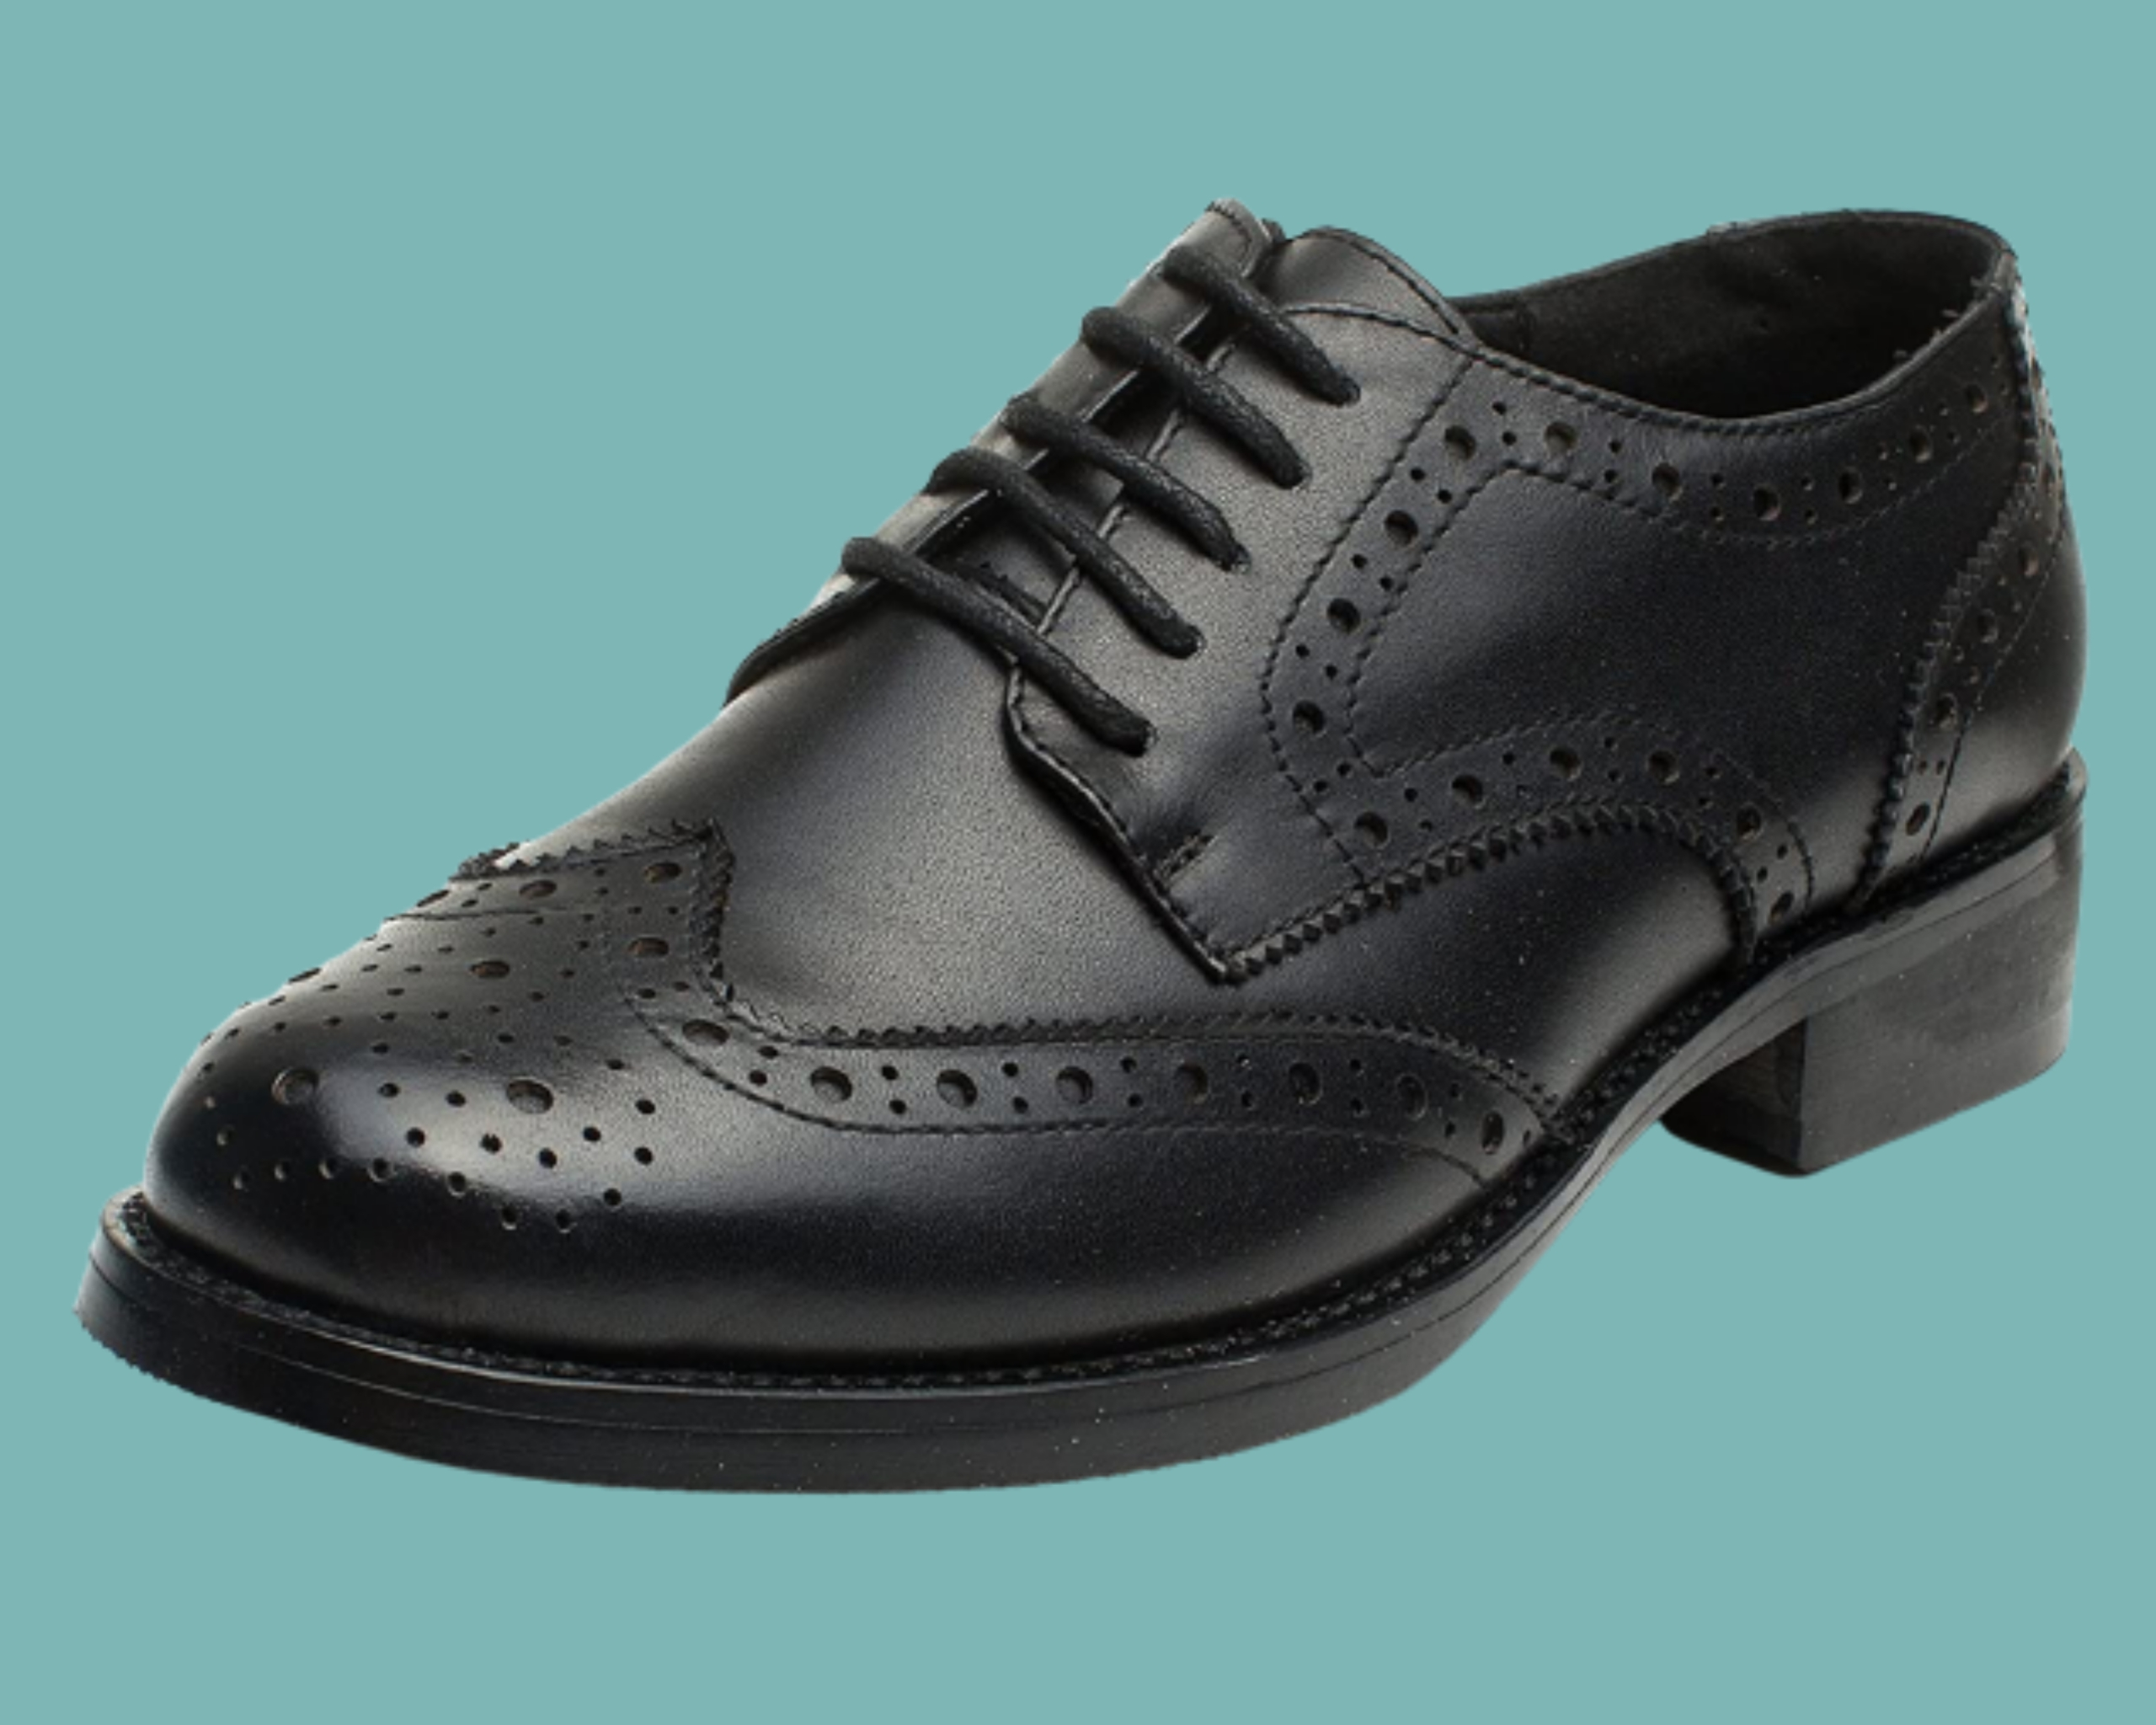 Best Oxford dress shoes for women